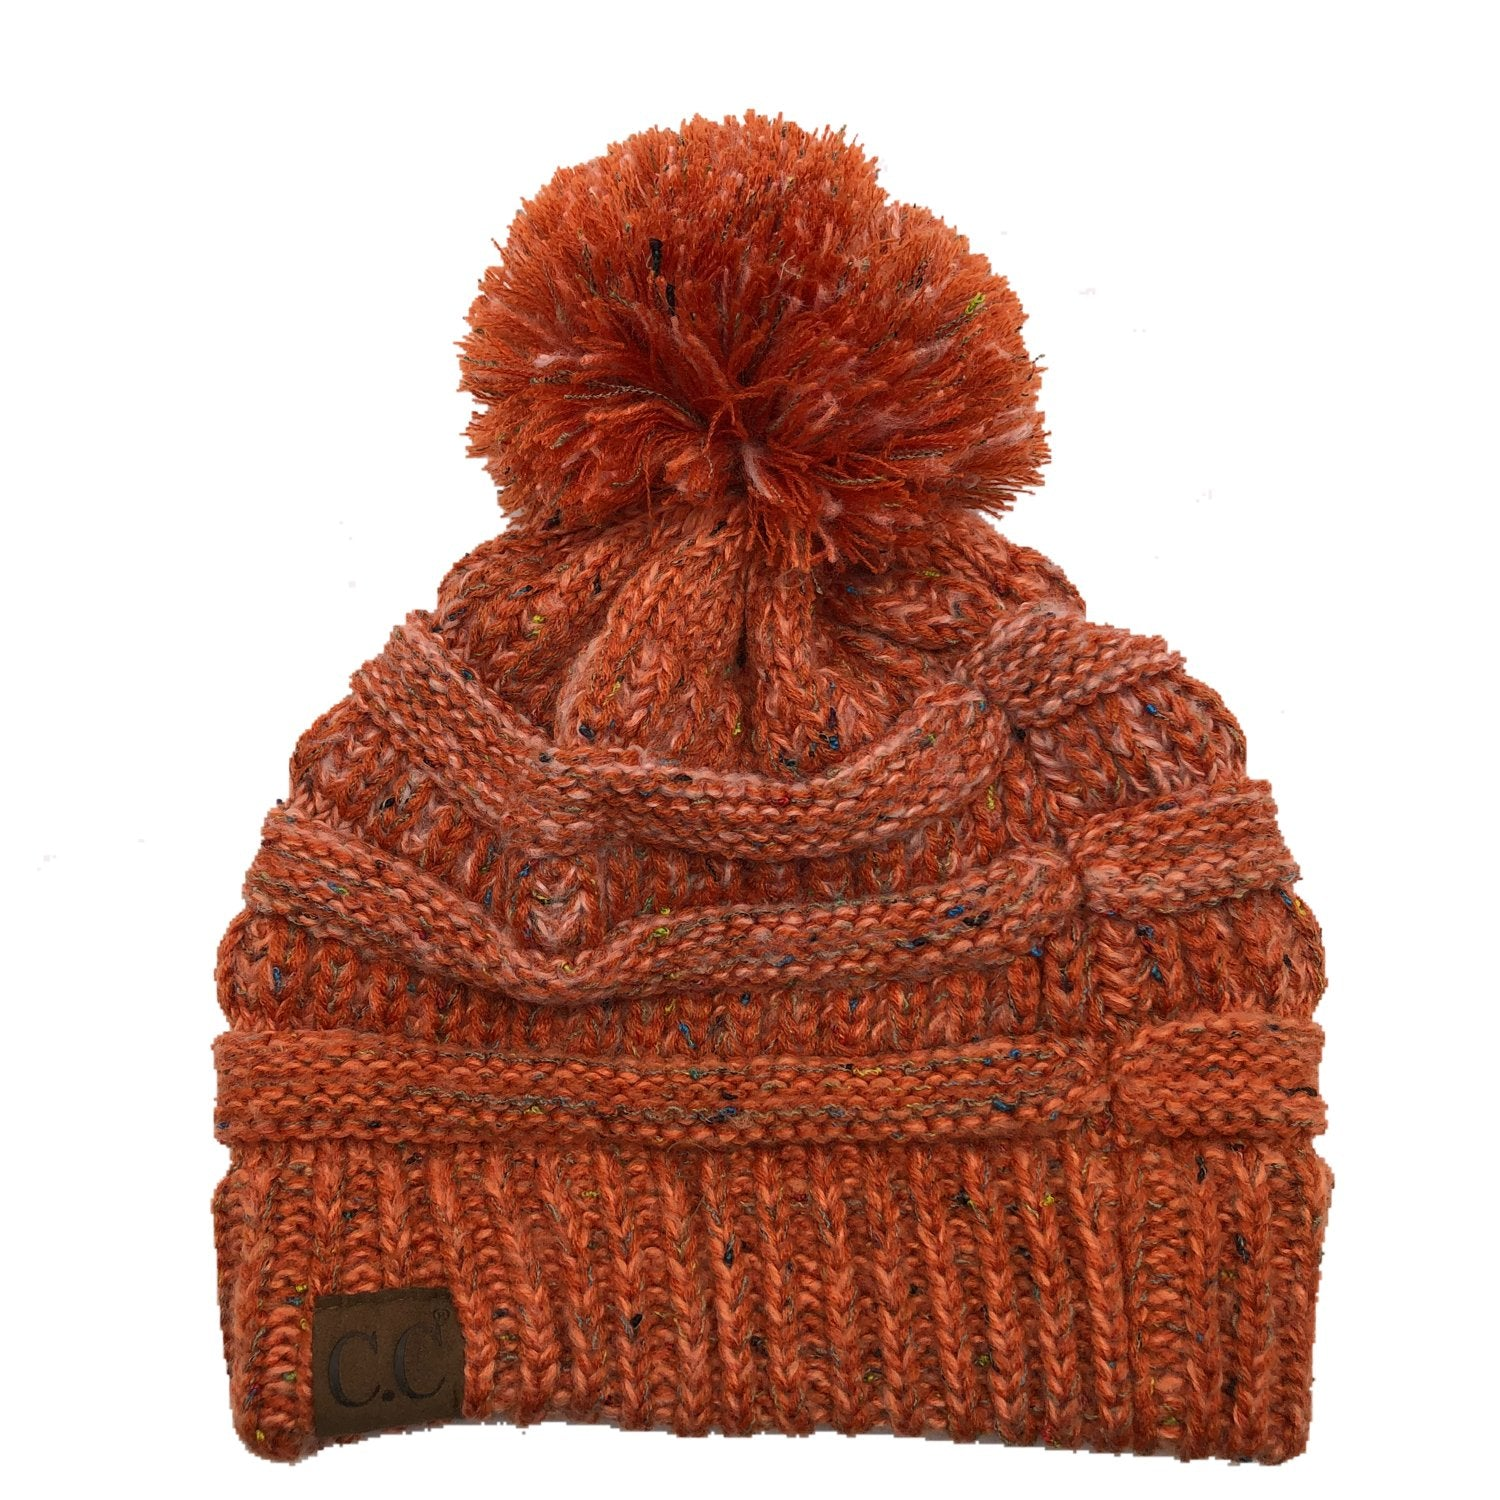 YJ-817 Speckled Pom Beanie - Orange